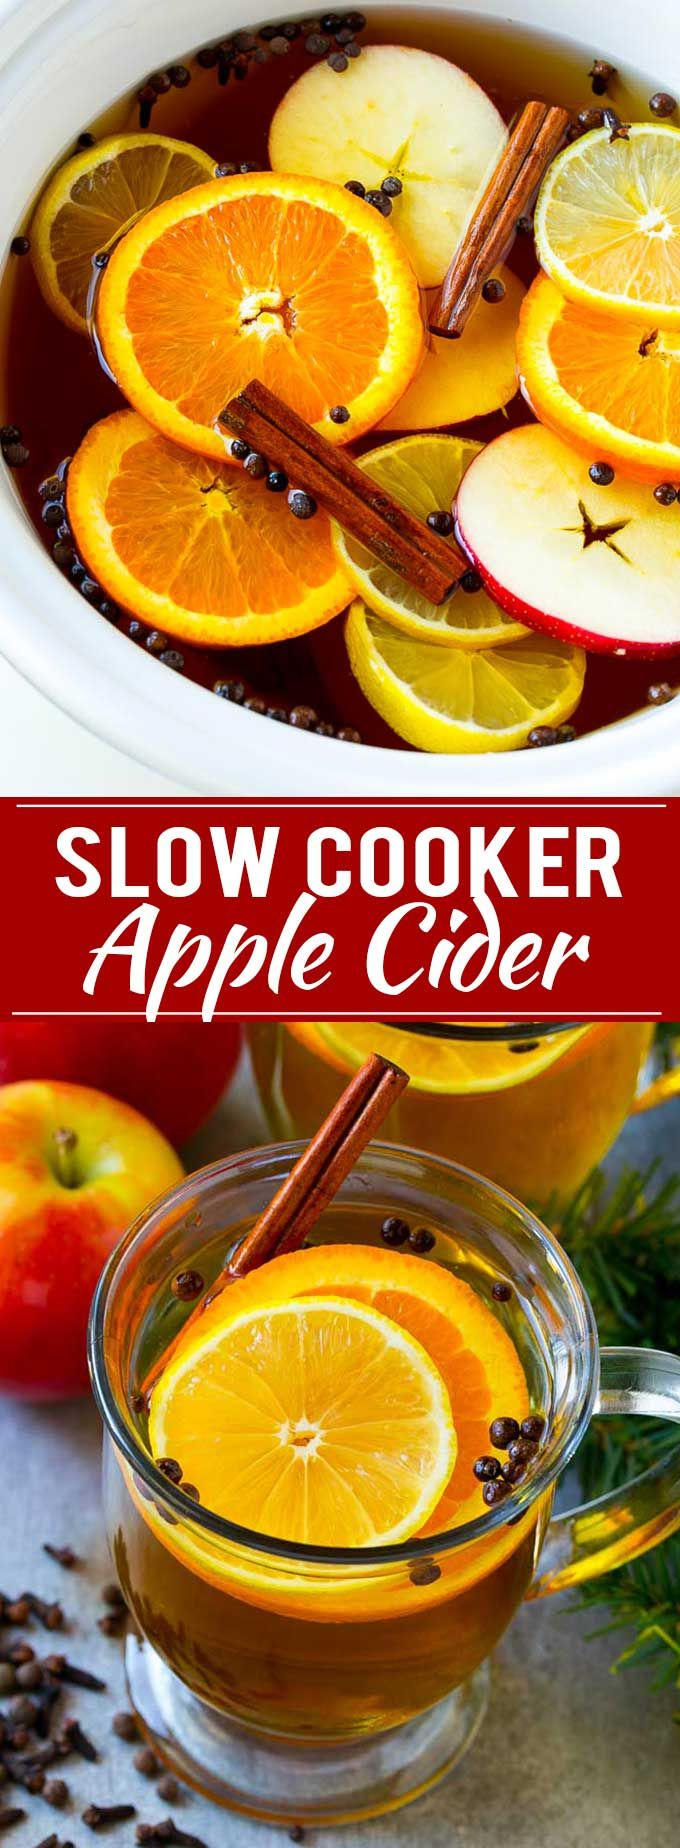 Slow Cooker Apple Cider | Mulled Apple Cider | Crockpot Apple Cider | Apple Cider Recipe with Apple Juice